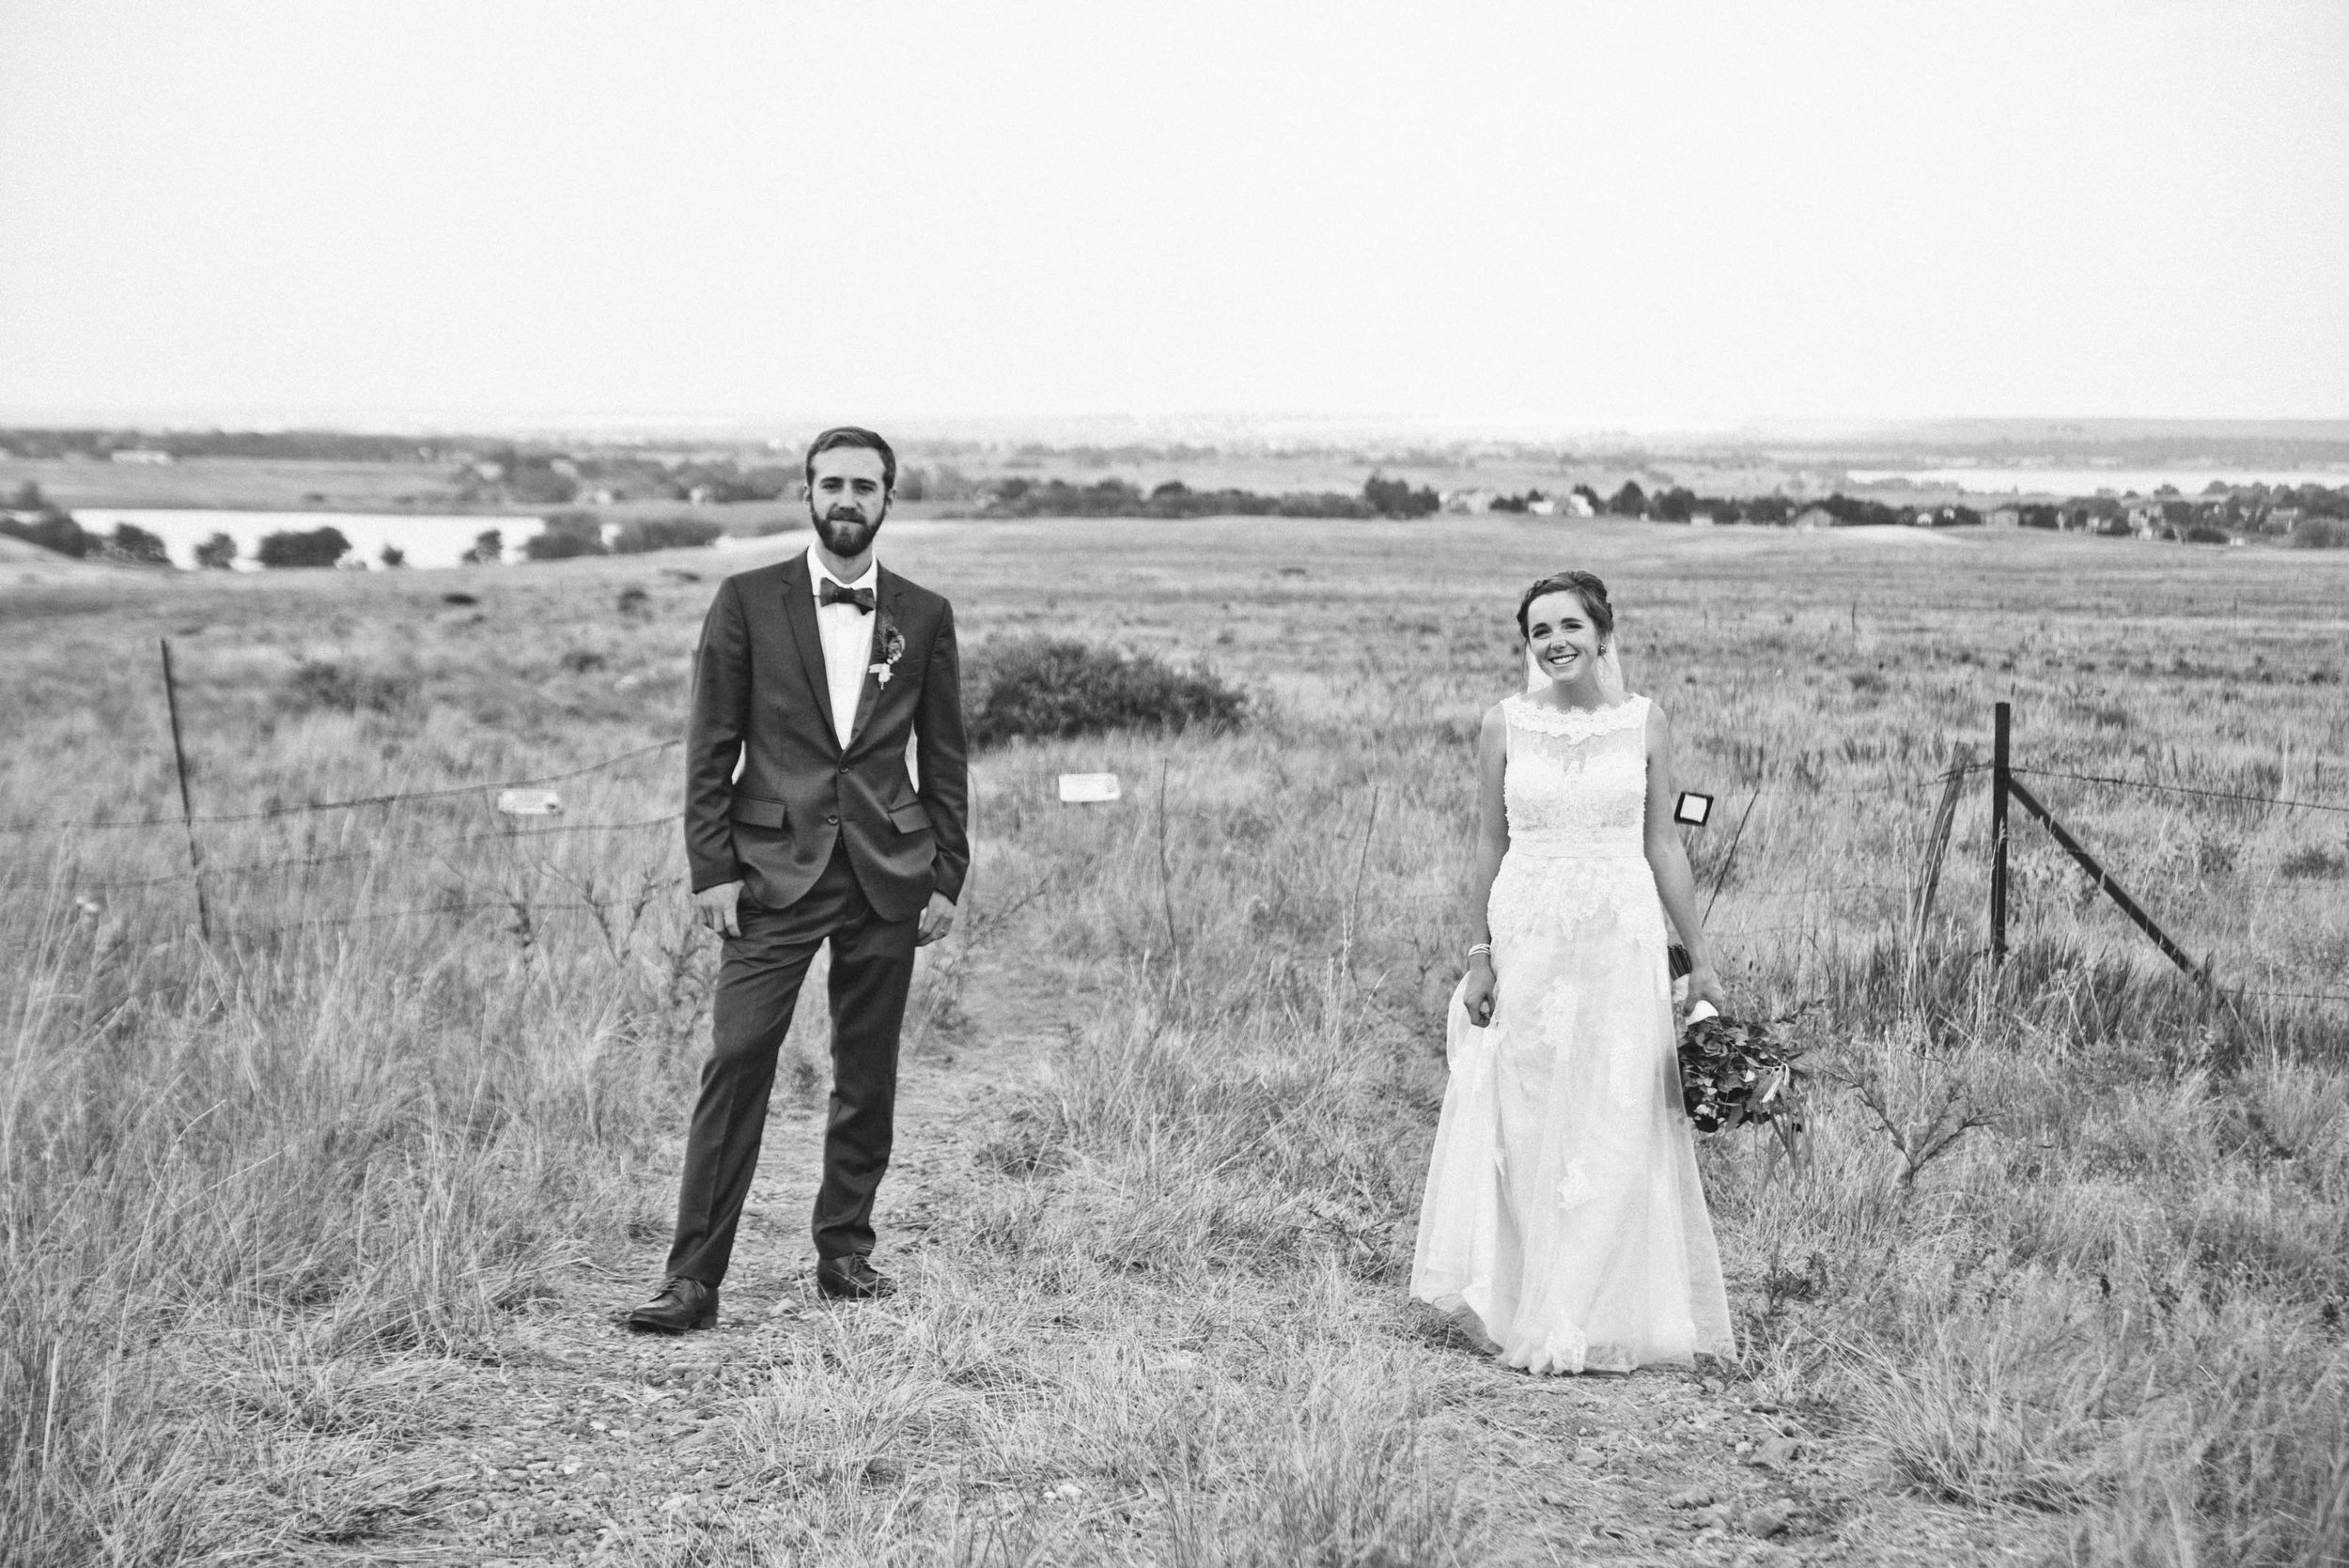 BARTLETT_weddings_Bilecky_sneakPeak_028.jpg